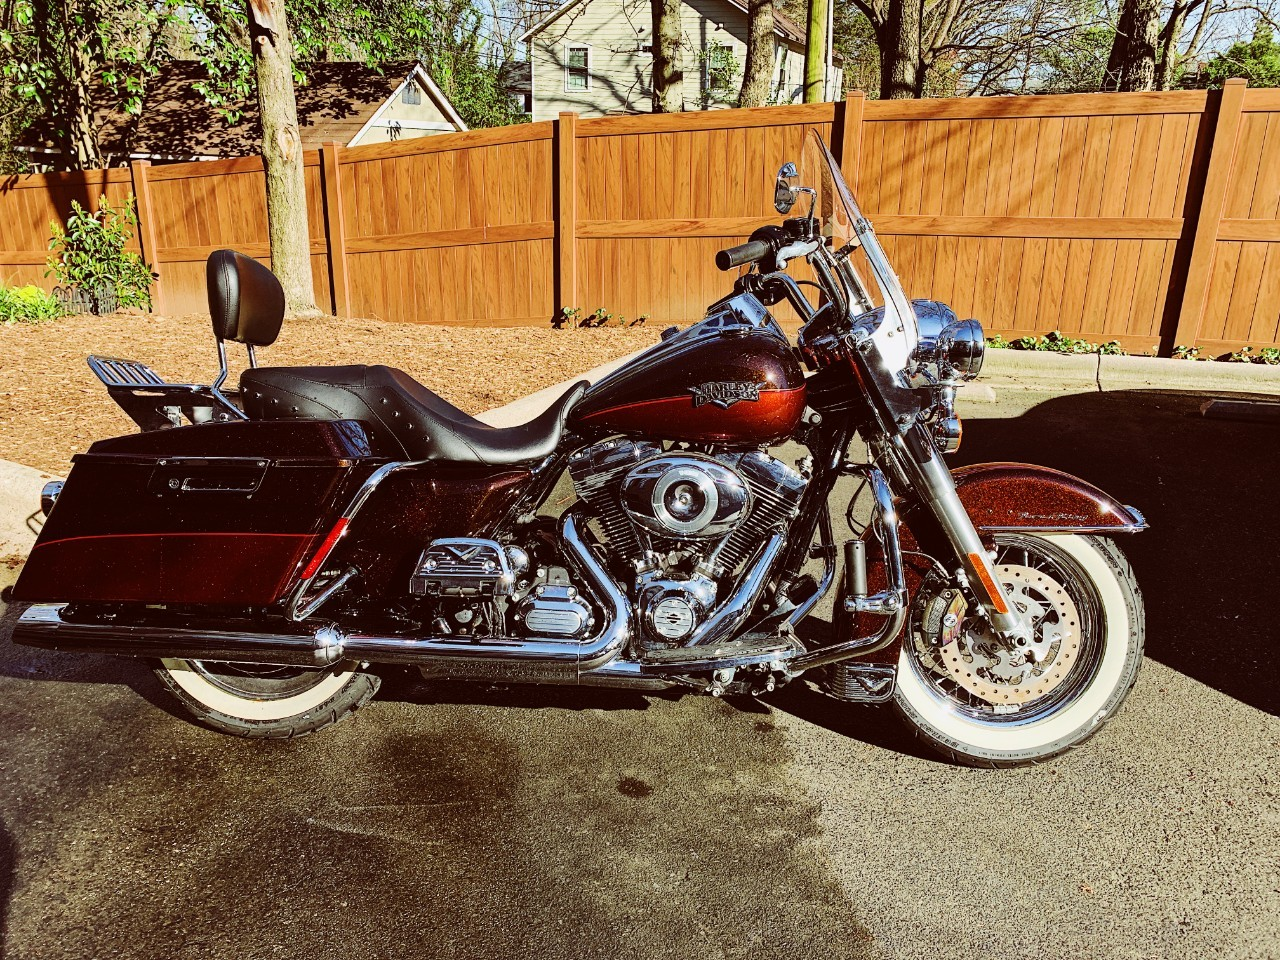 North Carolina - 19,175 Motorcycles Near Me For Sale - PWC